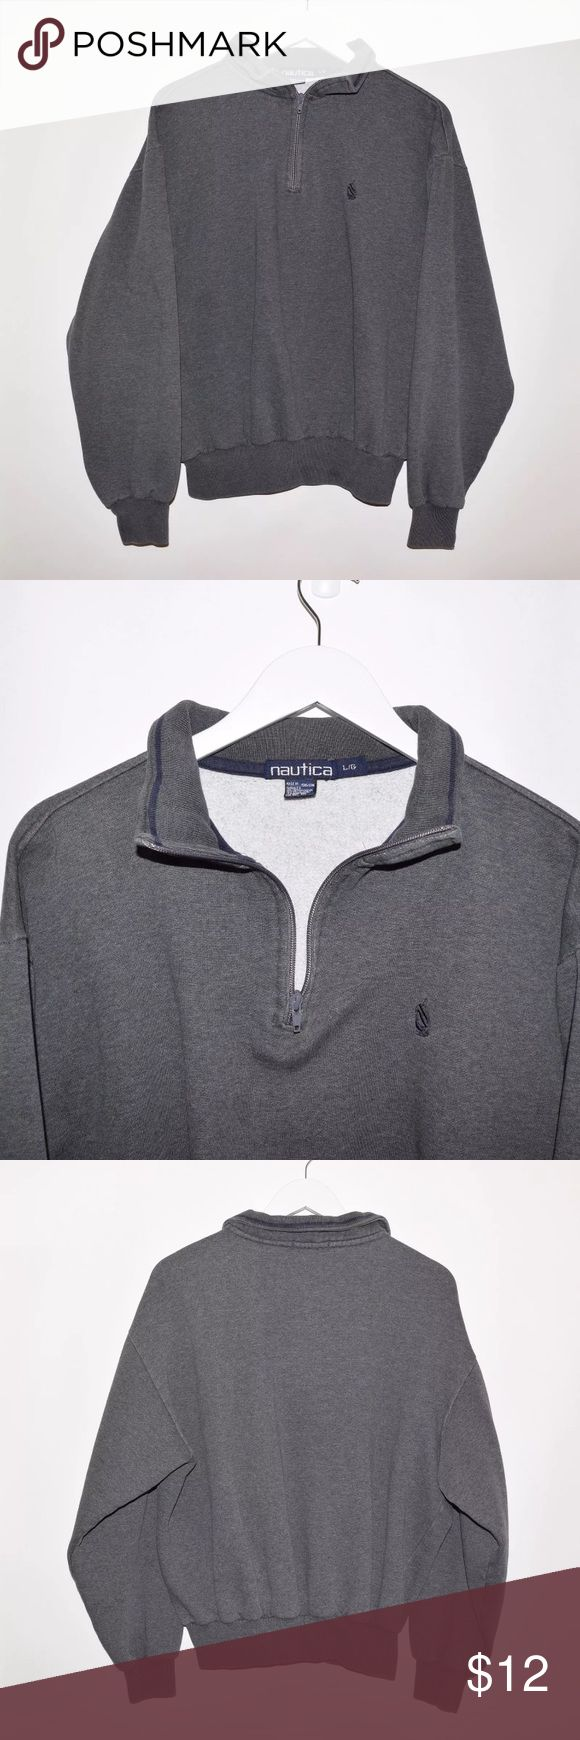 Nautica Half Zip Sweater Large Fits Like A Small Brand: Nautica Item name: Half Zip Pullover Sweater  		 Color: Grey Condition: This is a pre-owned item. It is in excellent used condition with no stains, rips, holes, etc. Comes from a smoke free household. Size: Men's Large (TAGGED LARGE BUT MEASUREMENTS ARE EQUIVALENT TO A MEN'S SIZE SMALL.)  Measurements:  Pit to Pit - 24 inches Neckline to bottom - 24 inches Nautica Sweaters Zip Up